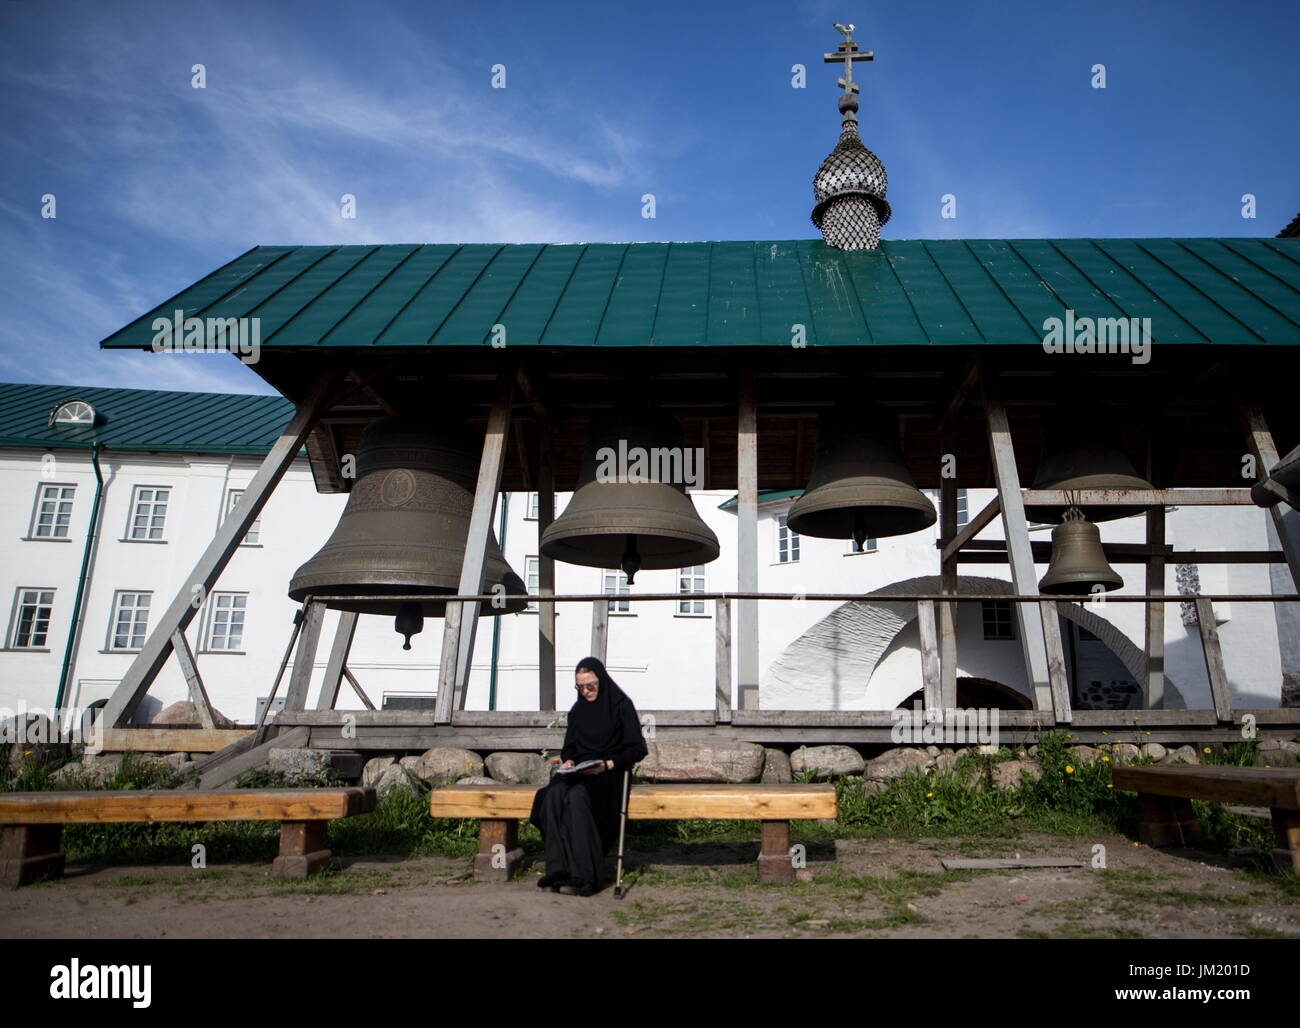 Arkhangelsk Region, Russia. 14th July, 2017. Bells of the Solovetsky Monastery situated on the Solovetsky Islands Stock Photo